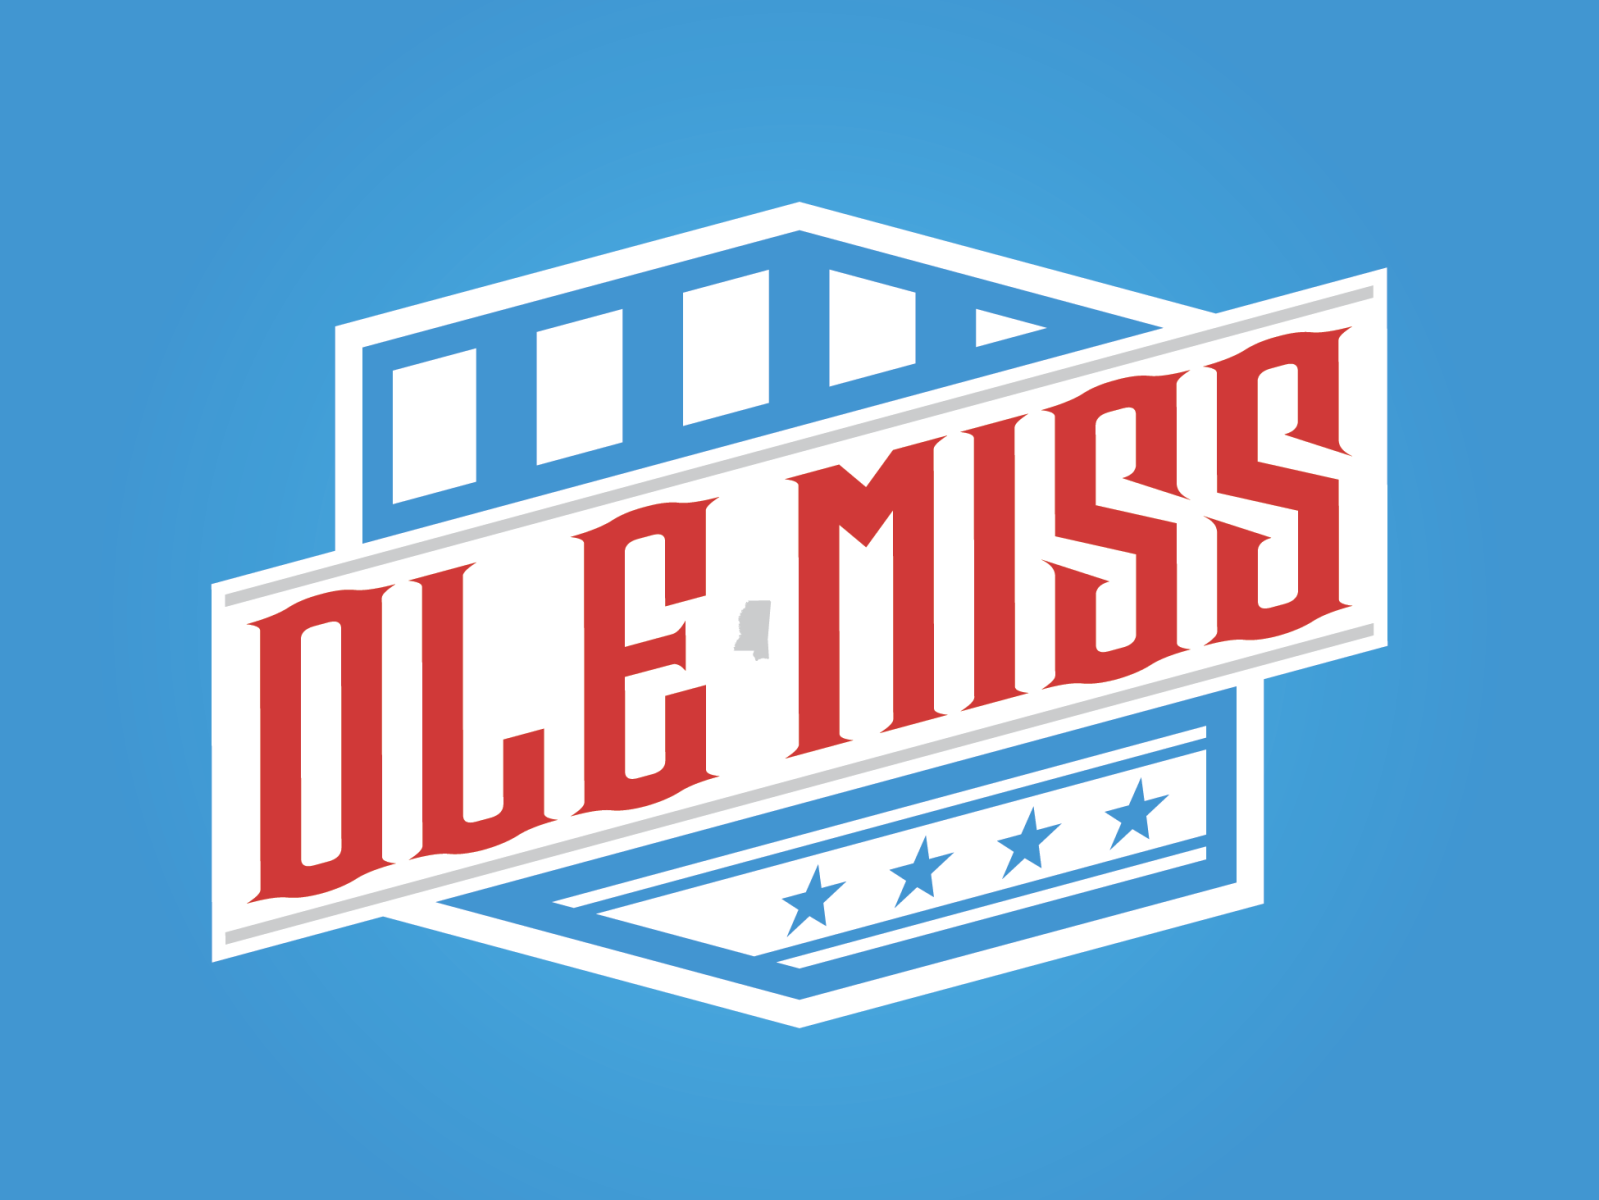 Ole Miss Rebels by Luke Orient on Dribbble.